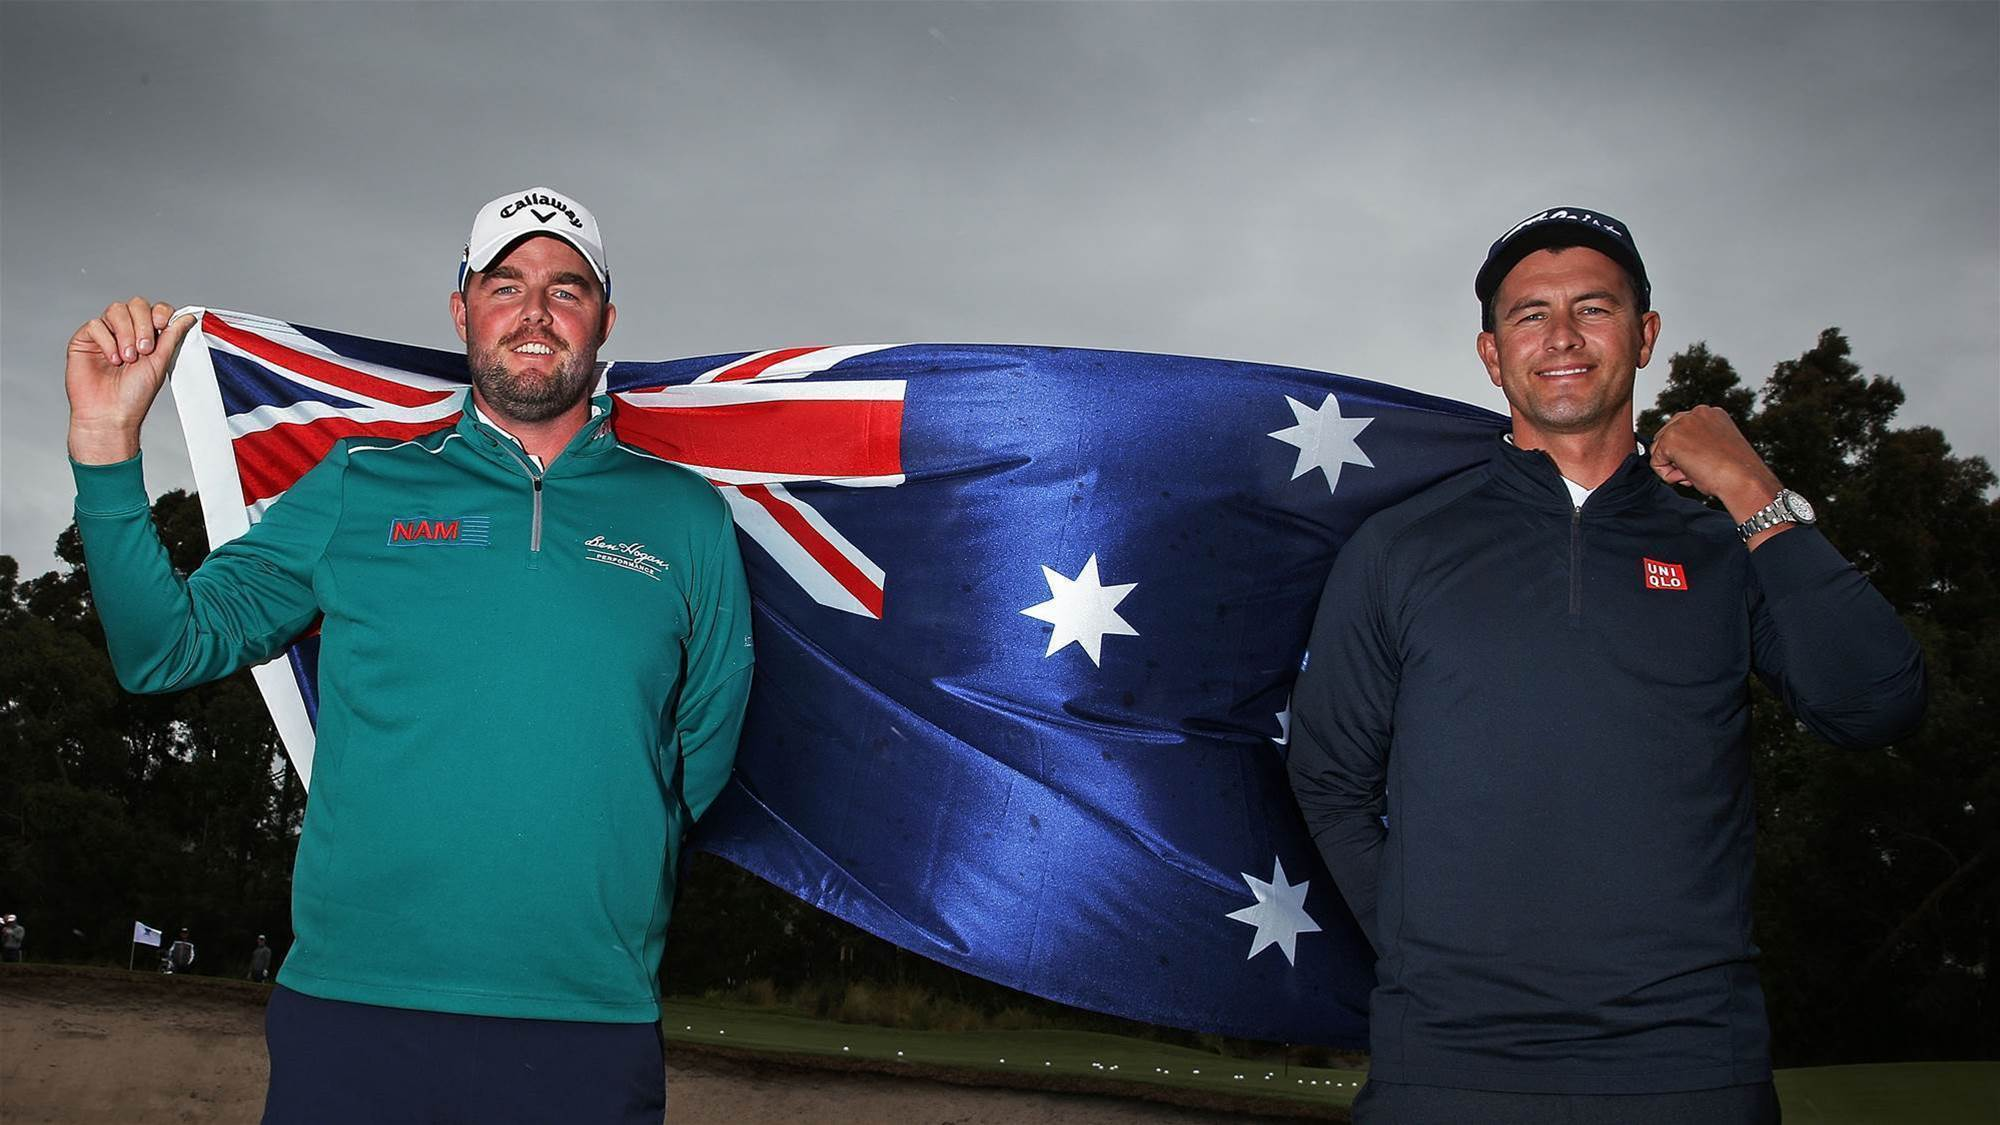 World Cup of Golf returning to Melbourne in 2018